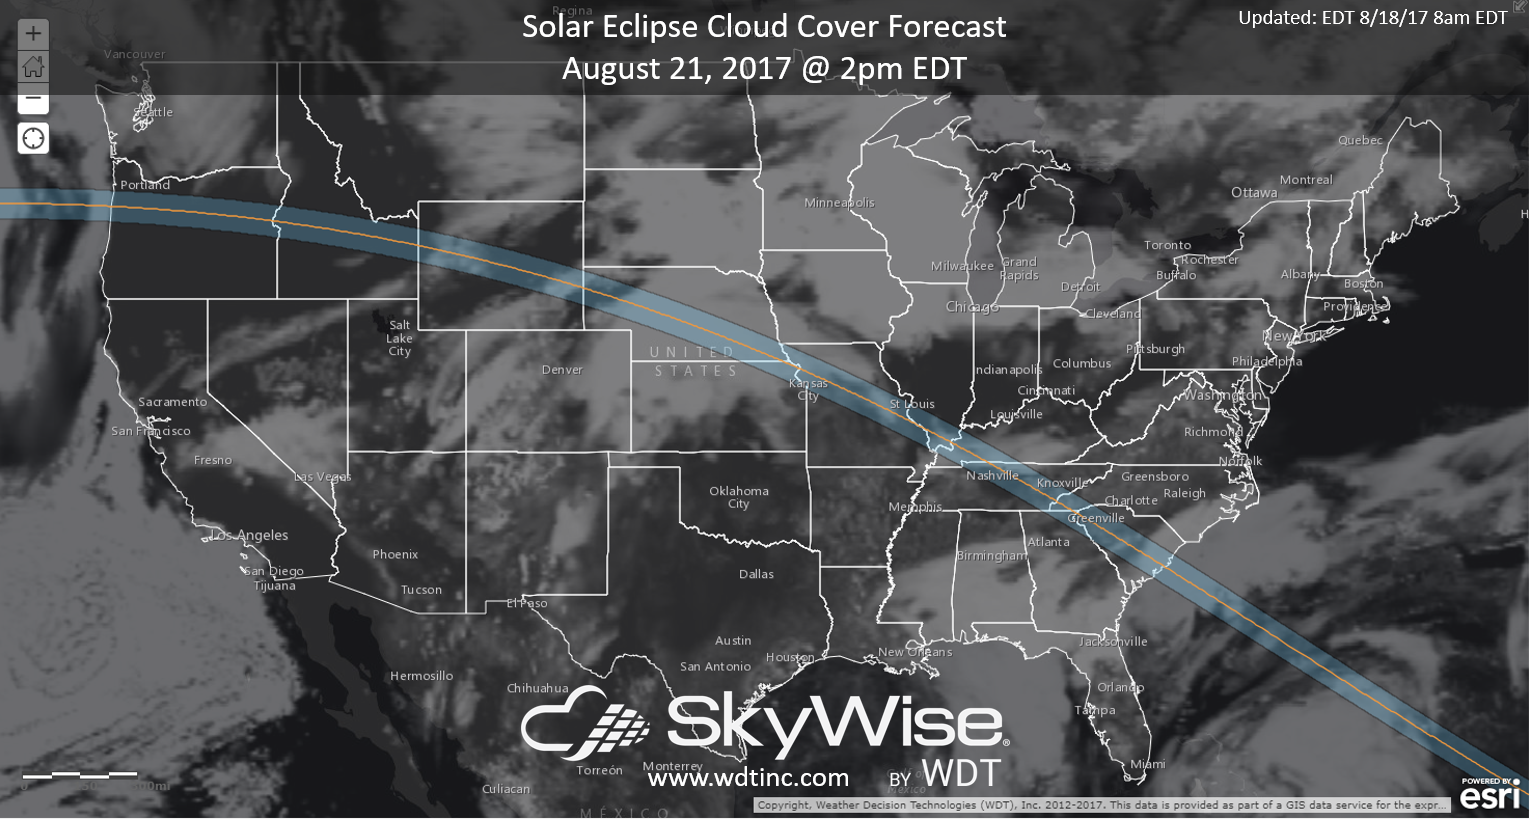 Your Latest Eclipse Forecast Can Be Found Here